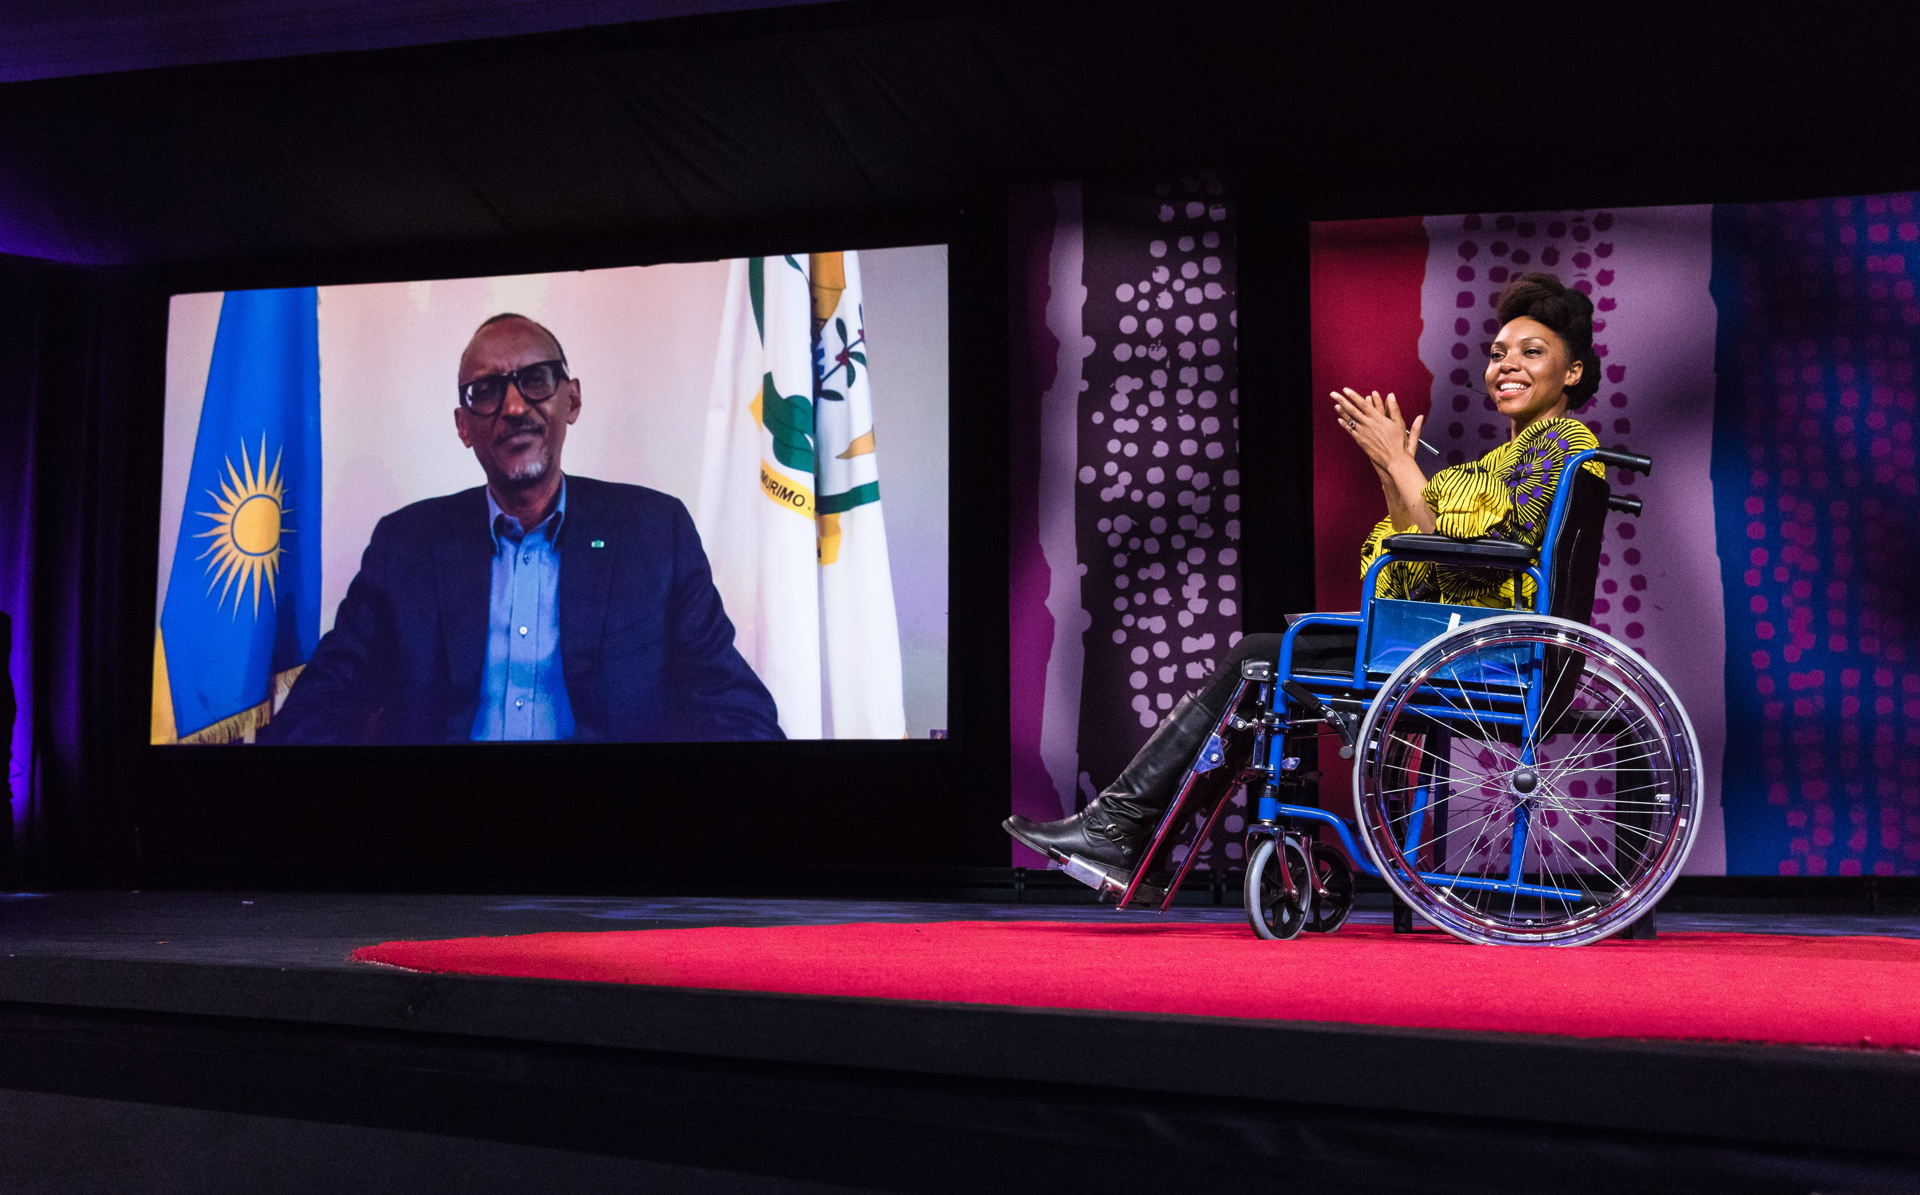 Paul Kagame, President of Rwanda, interviewed by Vimbayi Kajese via live video link at TEDGlobal 2017 - Builders, Truth Tellers, Catalysts - August 27-30, 2017, Arusha, Tanzania. Photo: Ryan Lash / TED